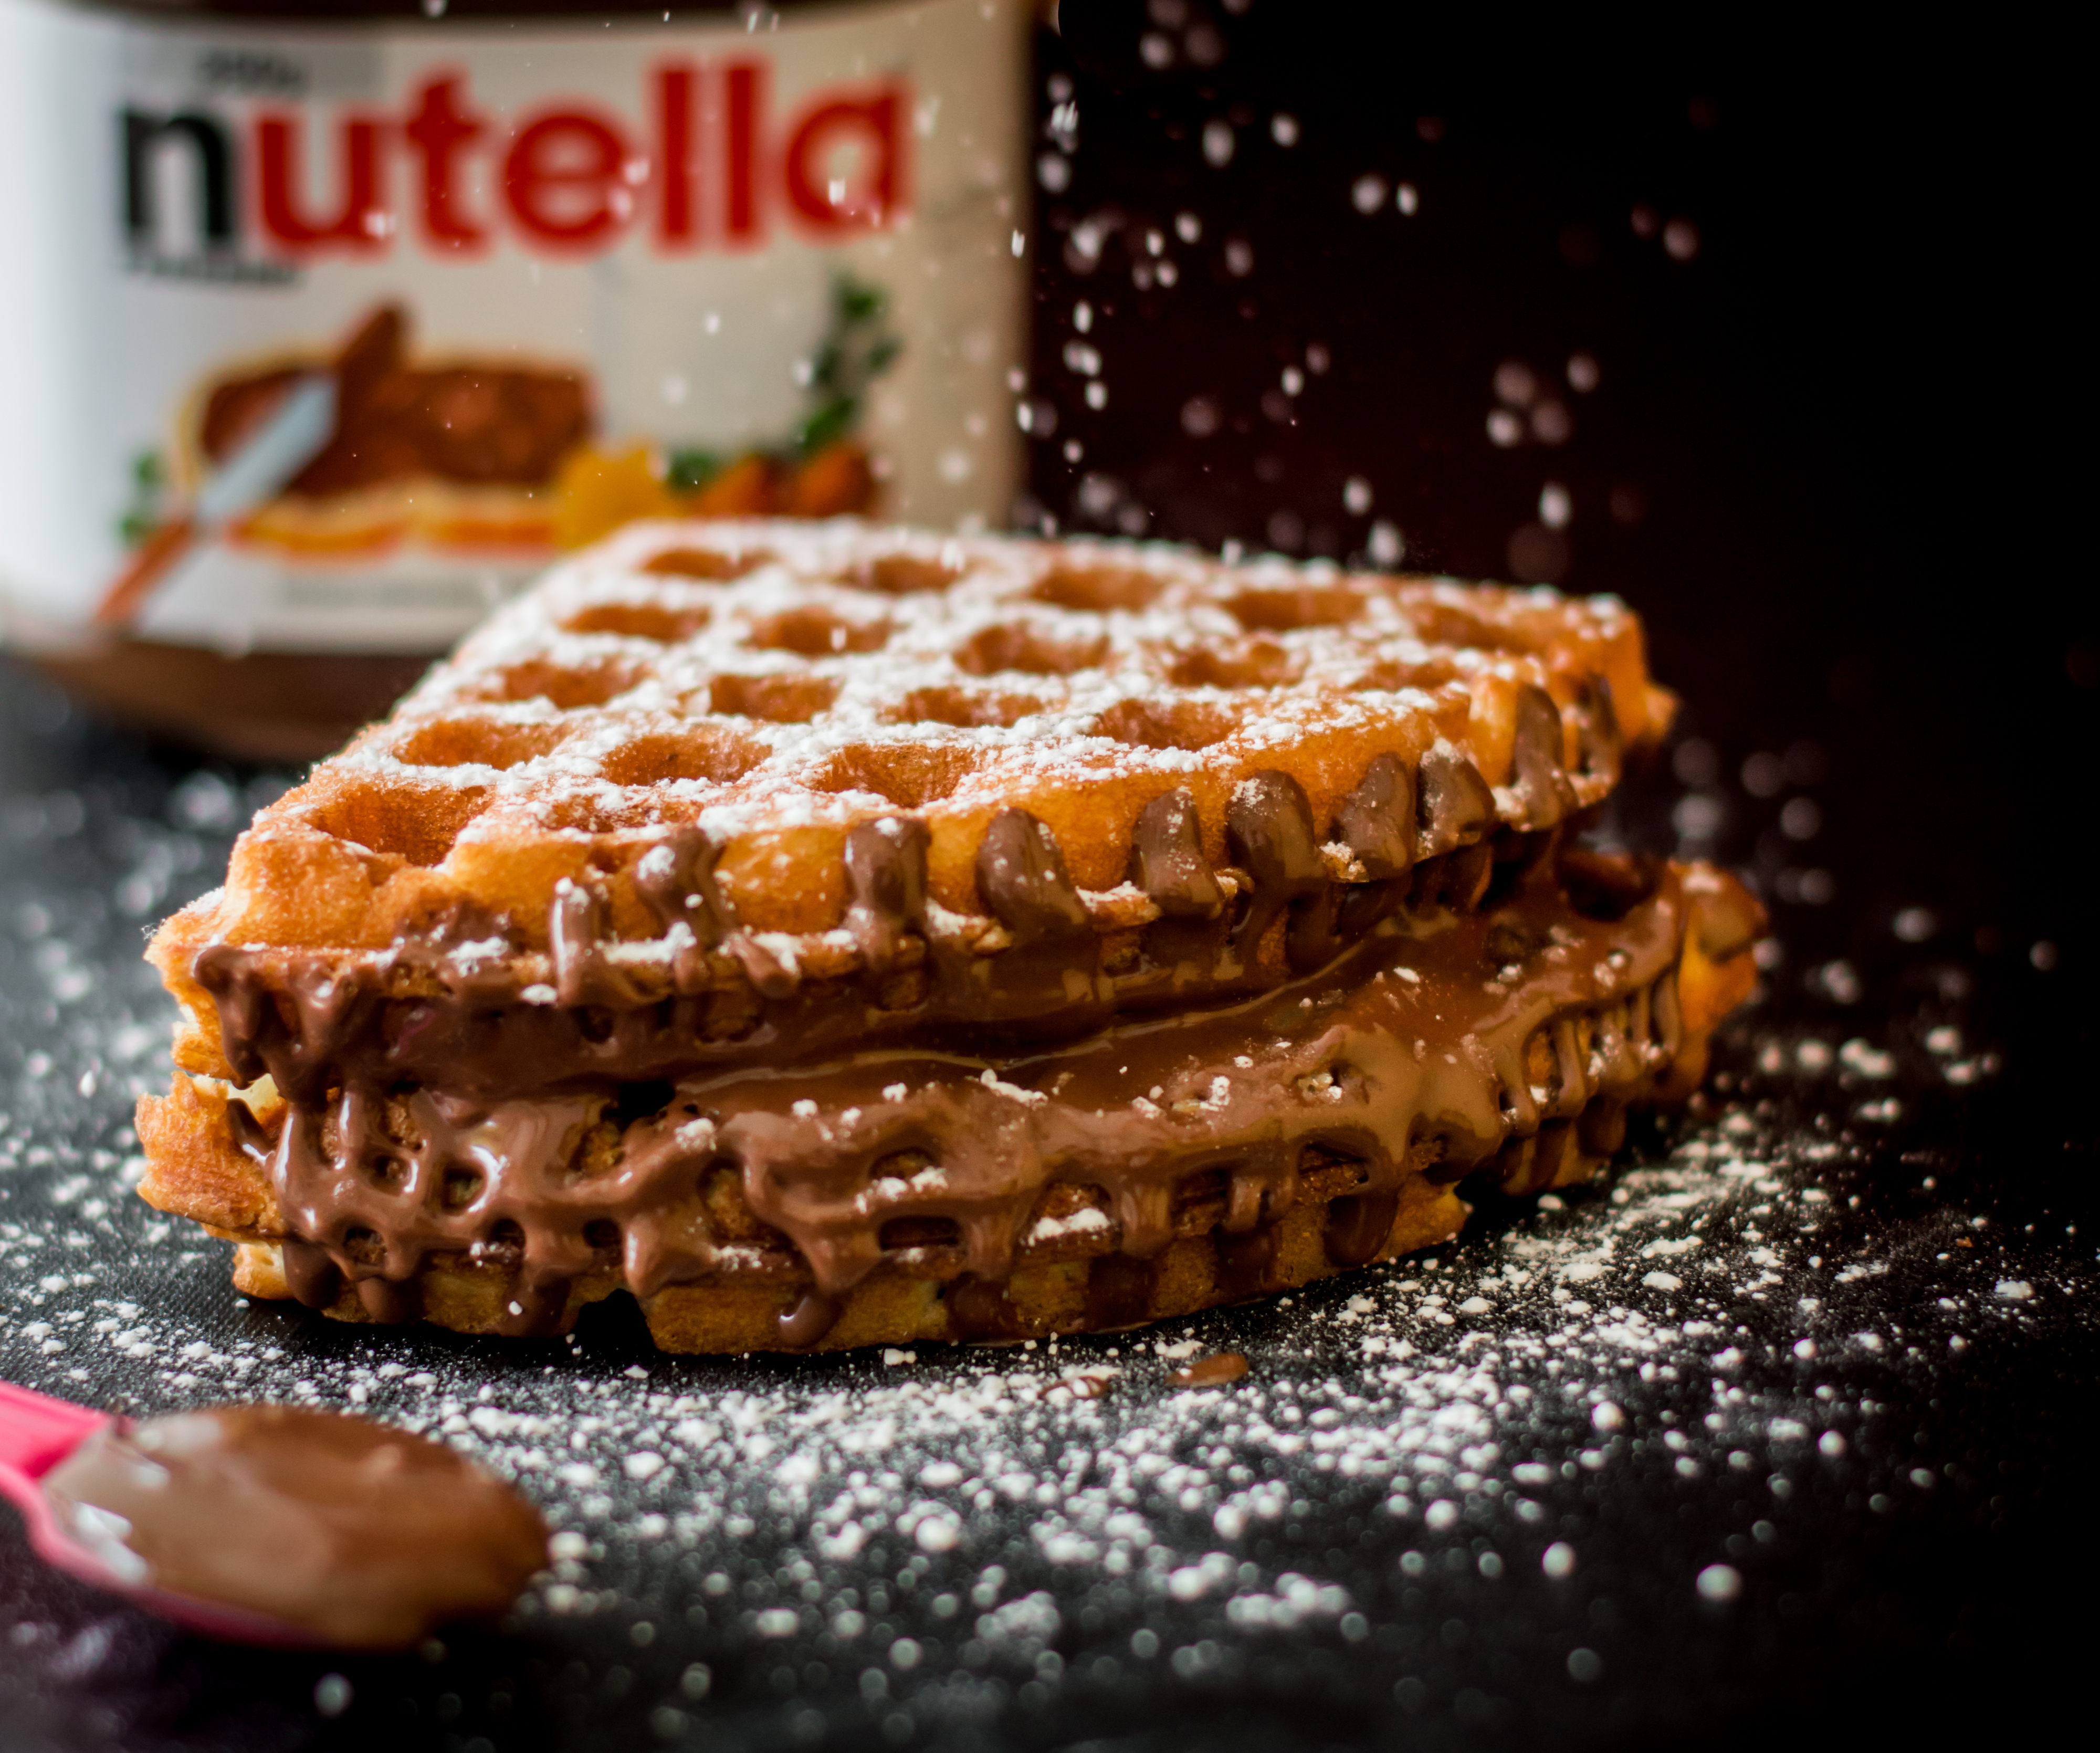 today is world nutella day